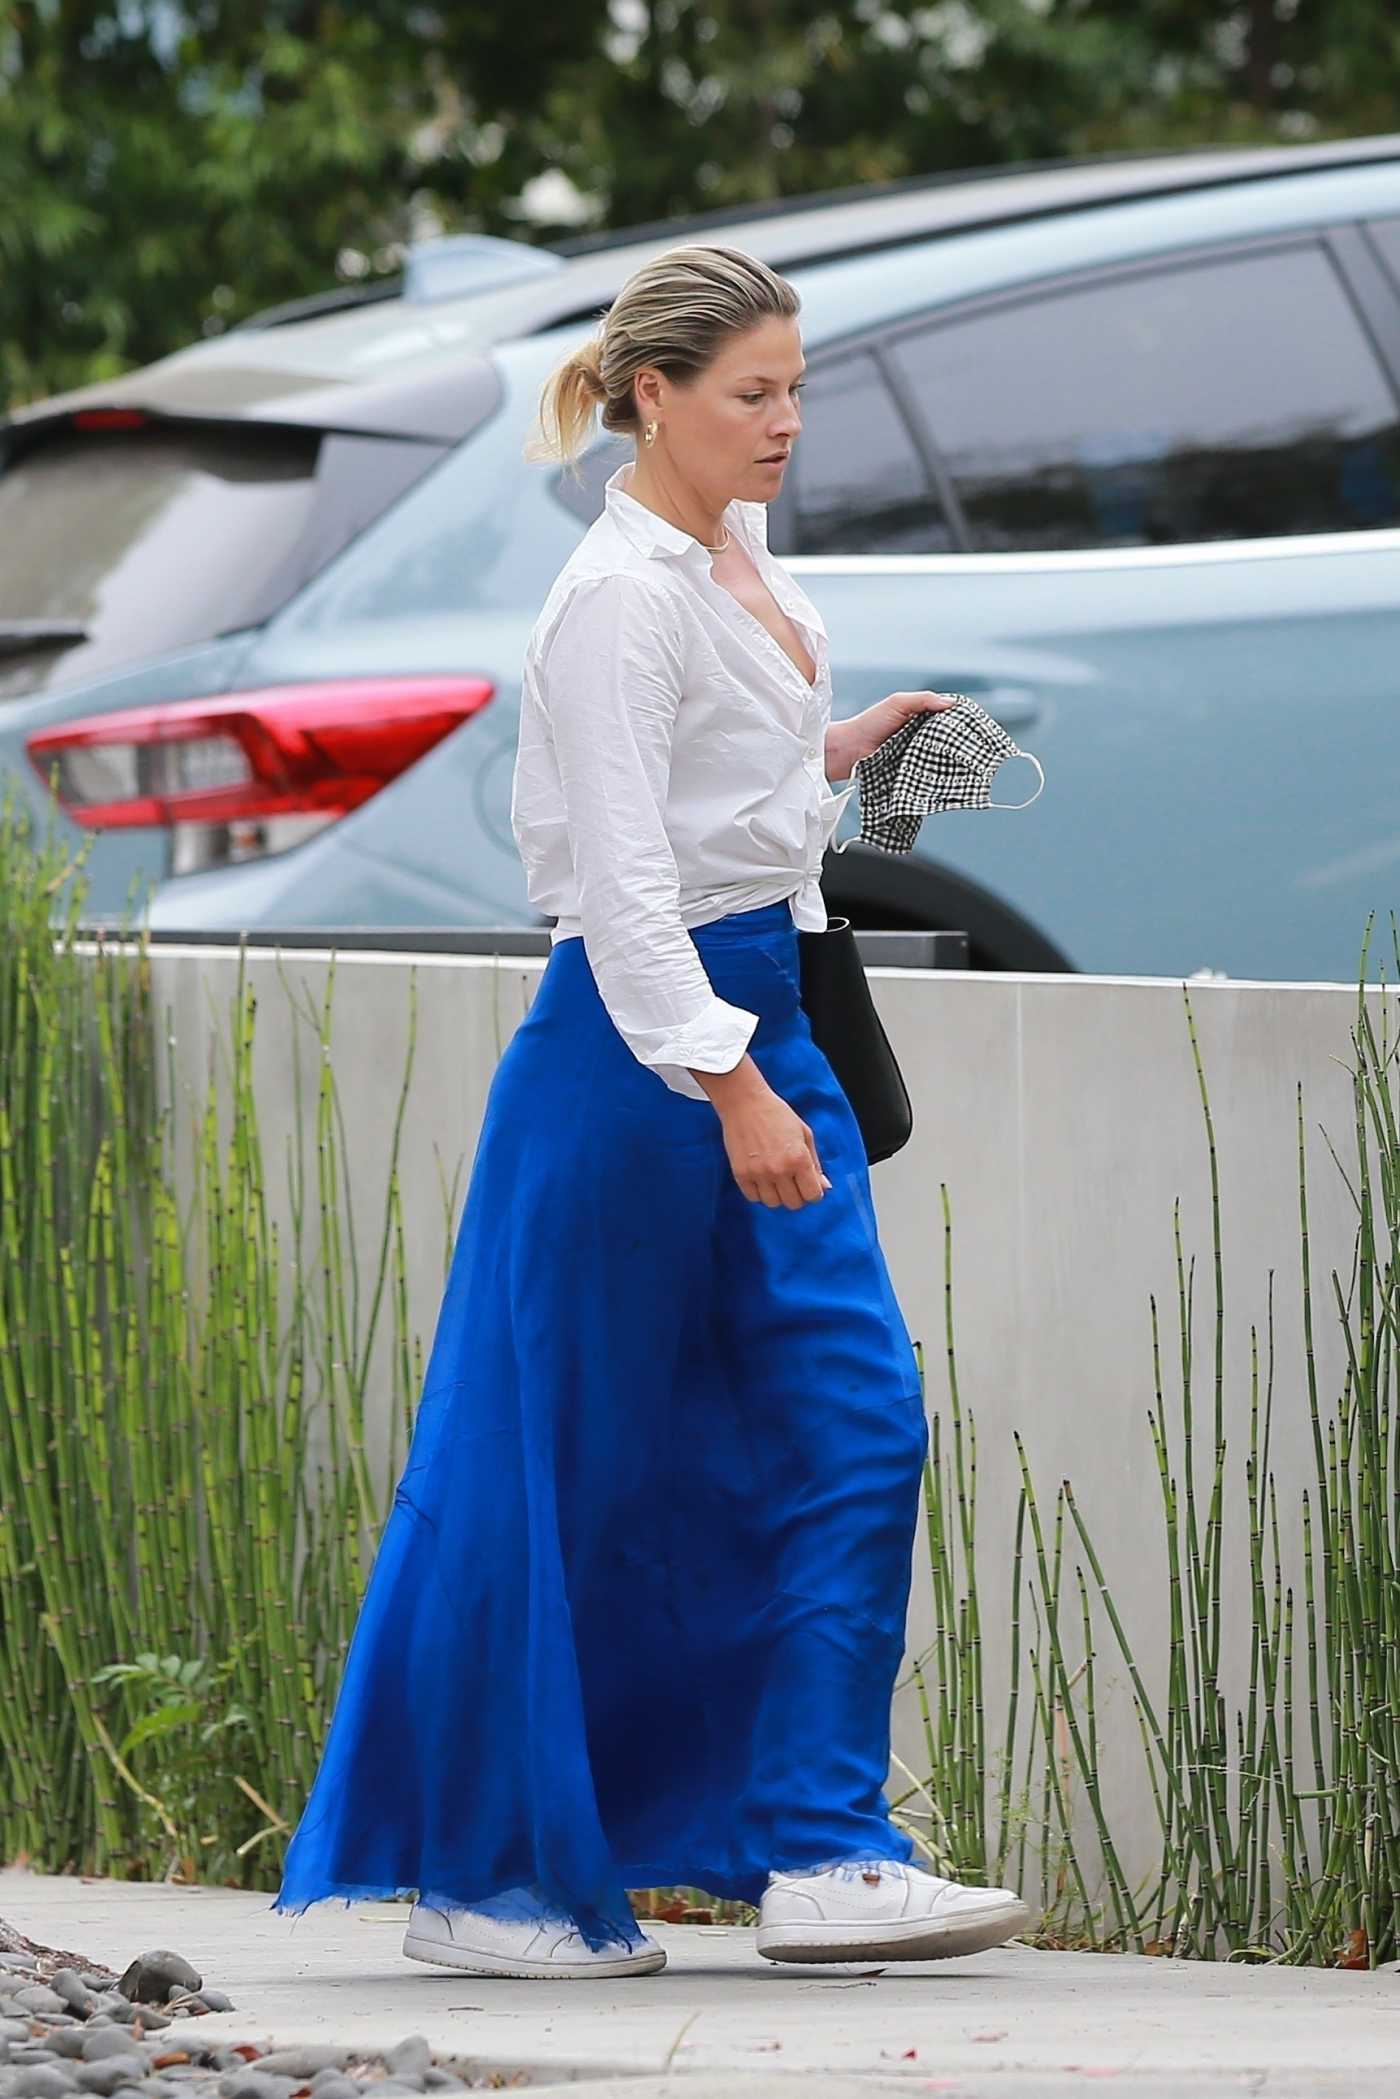 Ali Larter in a Blue Skirt Goes Shopping in Hollywood 06/18/2020